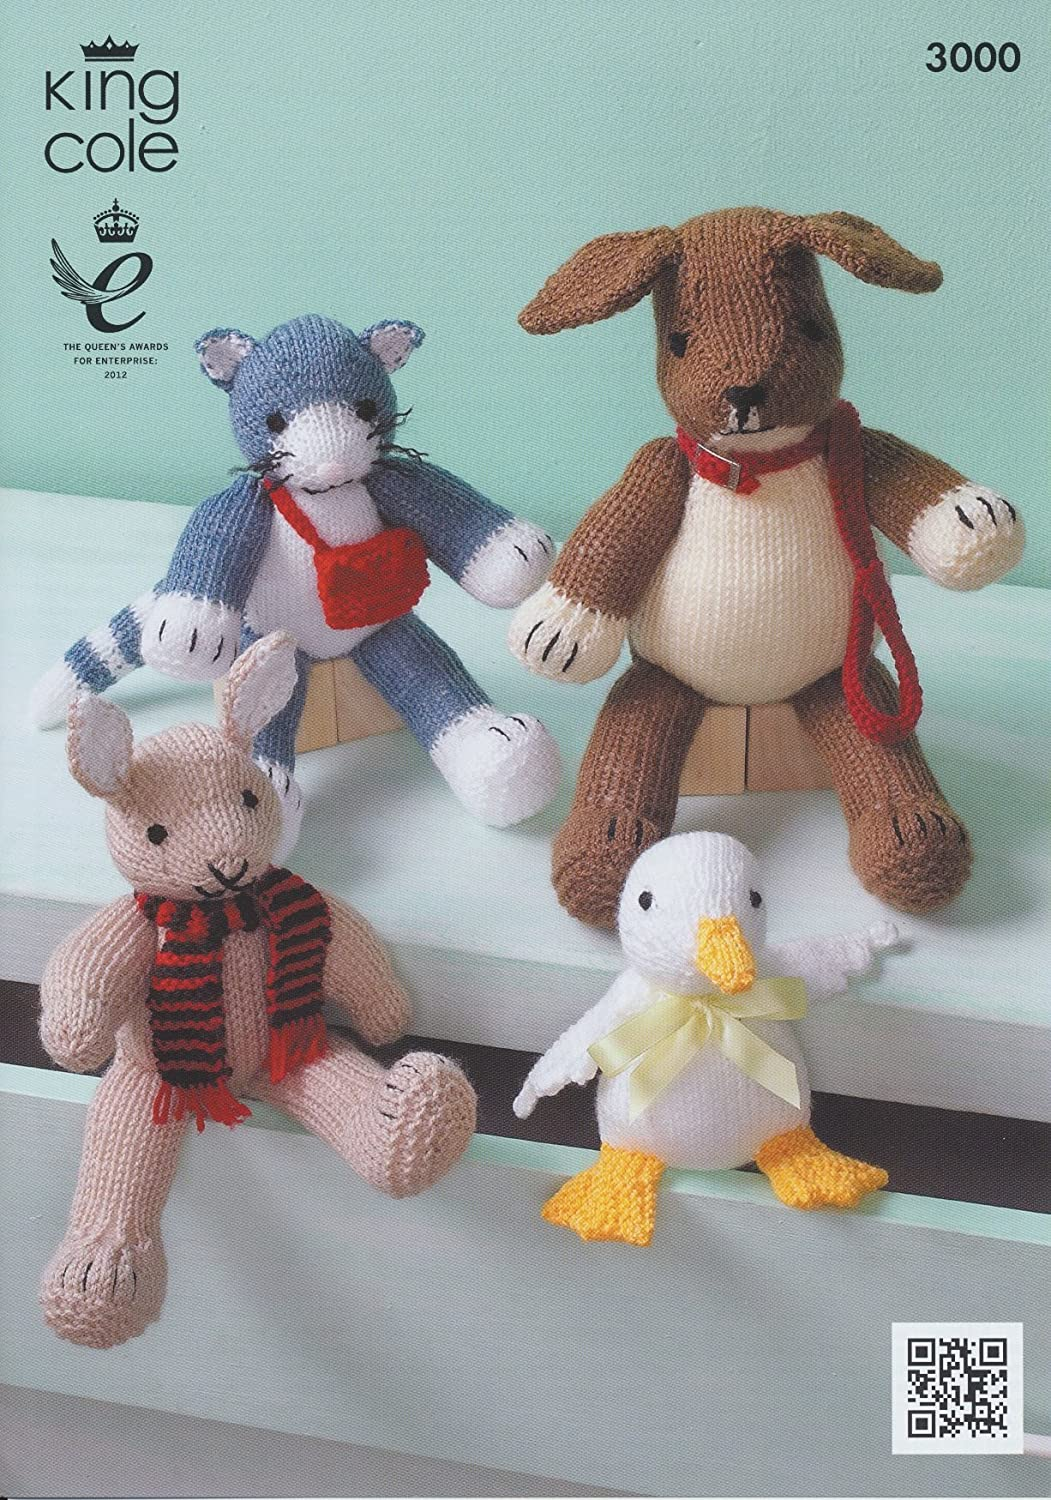 King cole toy animals in aran dk knitting pattern 3000 amazon king cole toy animals in aran dk knitting pattern 3000 amazon kitchen home bankloansurffo Image collections